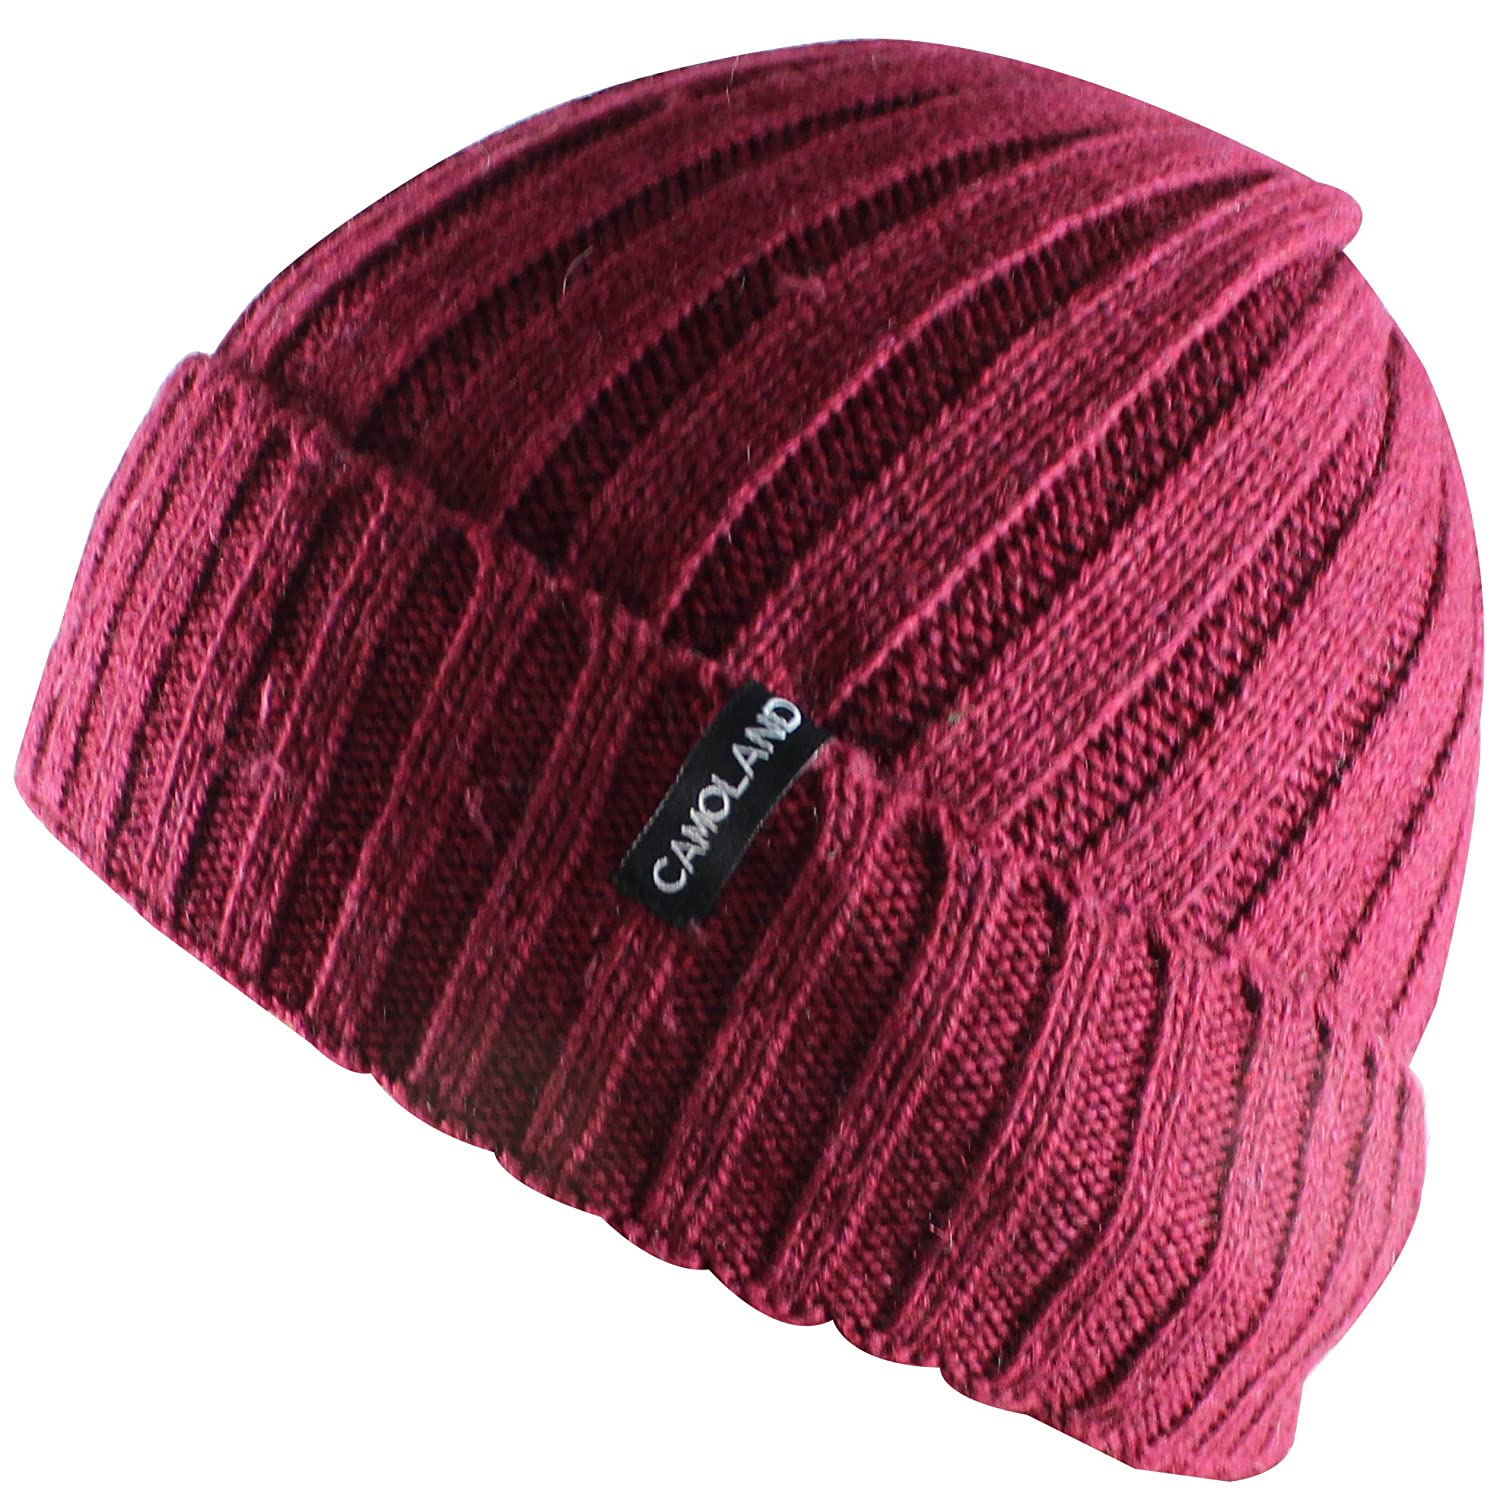 CAMOLAND Men's Fleece Wool Cable Knit Winter Beanie Hat EWH001-BK